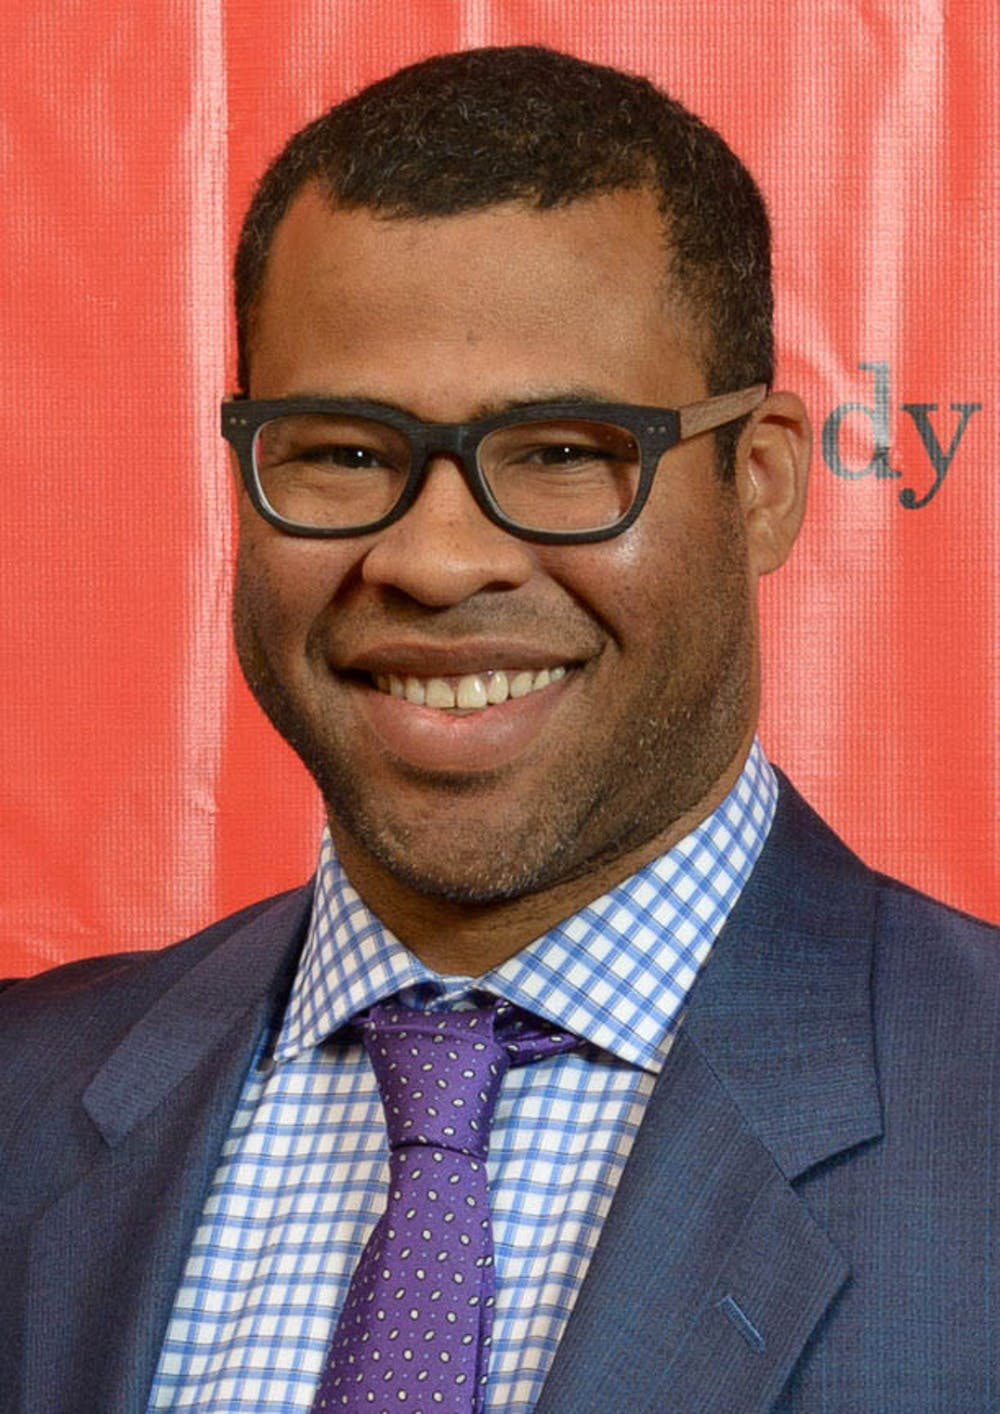 Jordan Peele is the first black writer and director to have a 100 million dollar film debut.